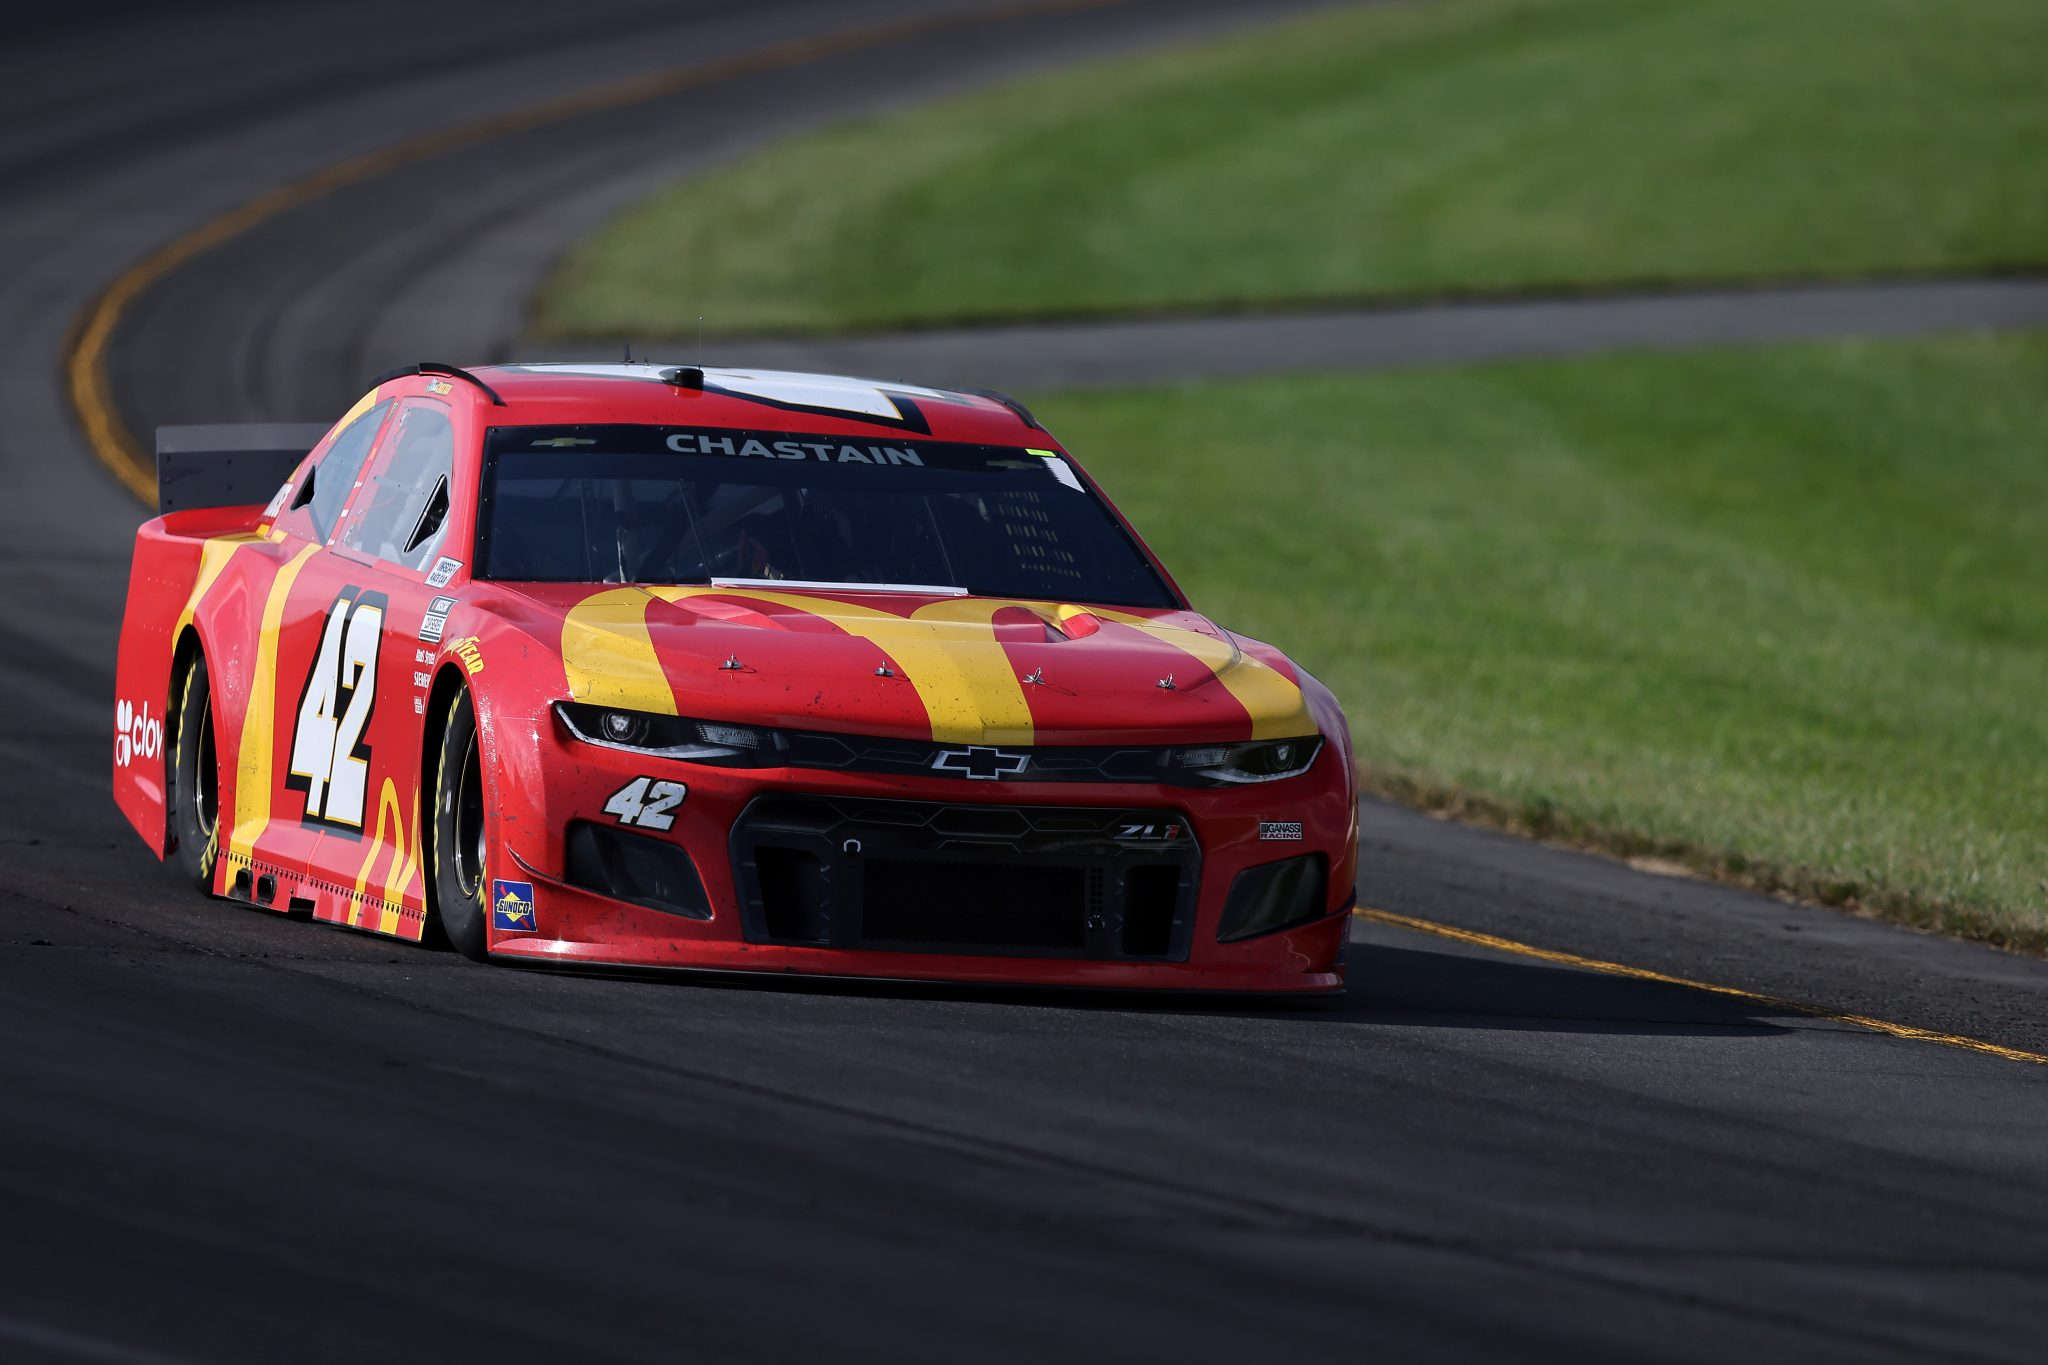 LONG POND, PENNSYLVANIA - JUNE 27: Ross Chastain, driver of the #42 McDonald's Chevrolet, drives during the NASCAR Cup Series Explore the Pocono Mountains 350 at Pocono Raceway on June 27, 2021 in Long Pond, Pennsylvania. (Photo by James Gilbert/Getty Images) | Getty Images